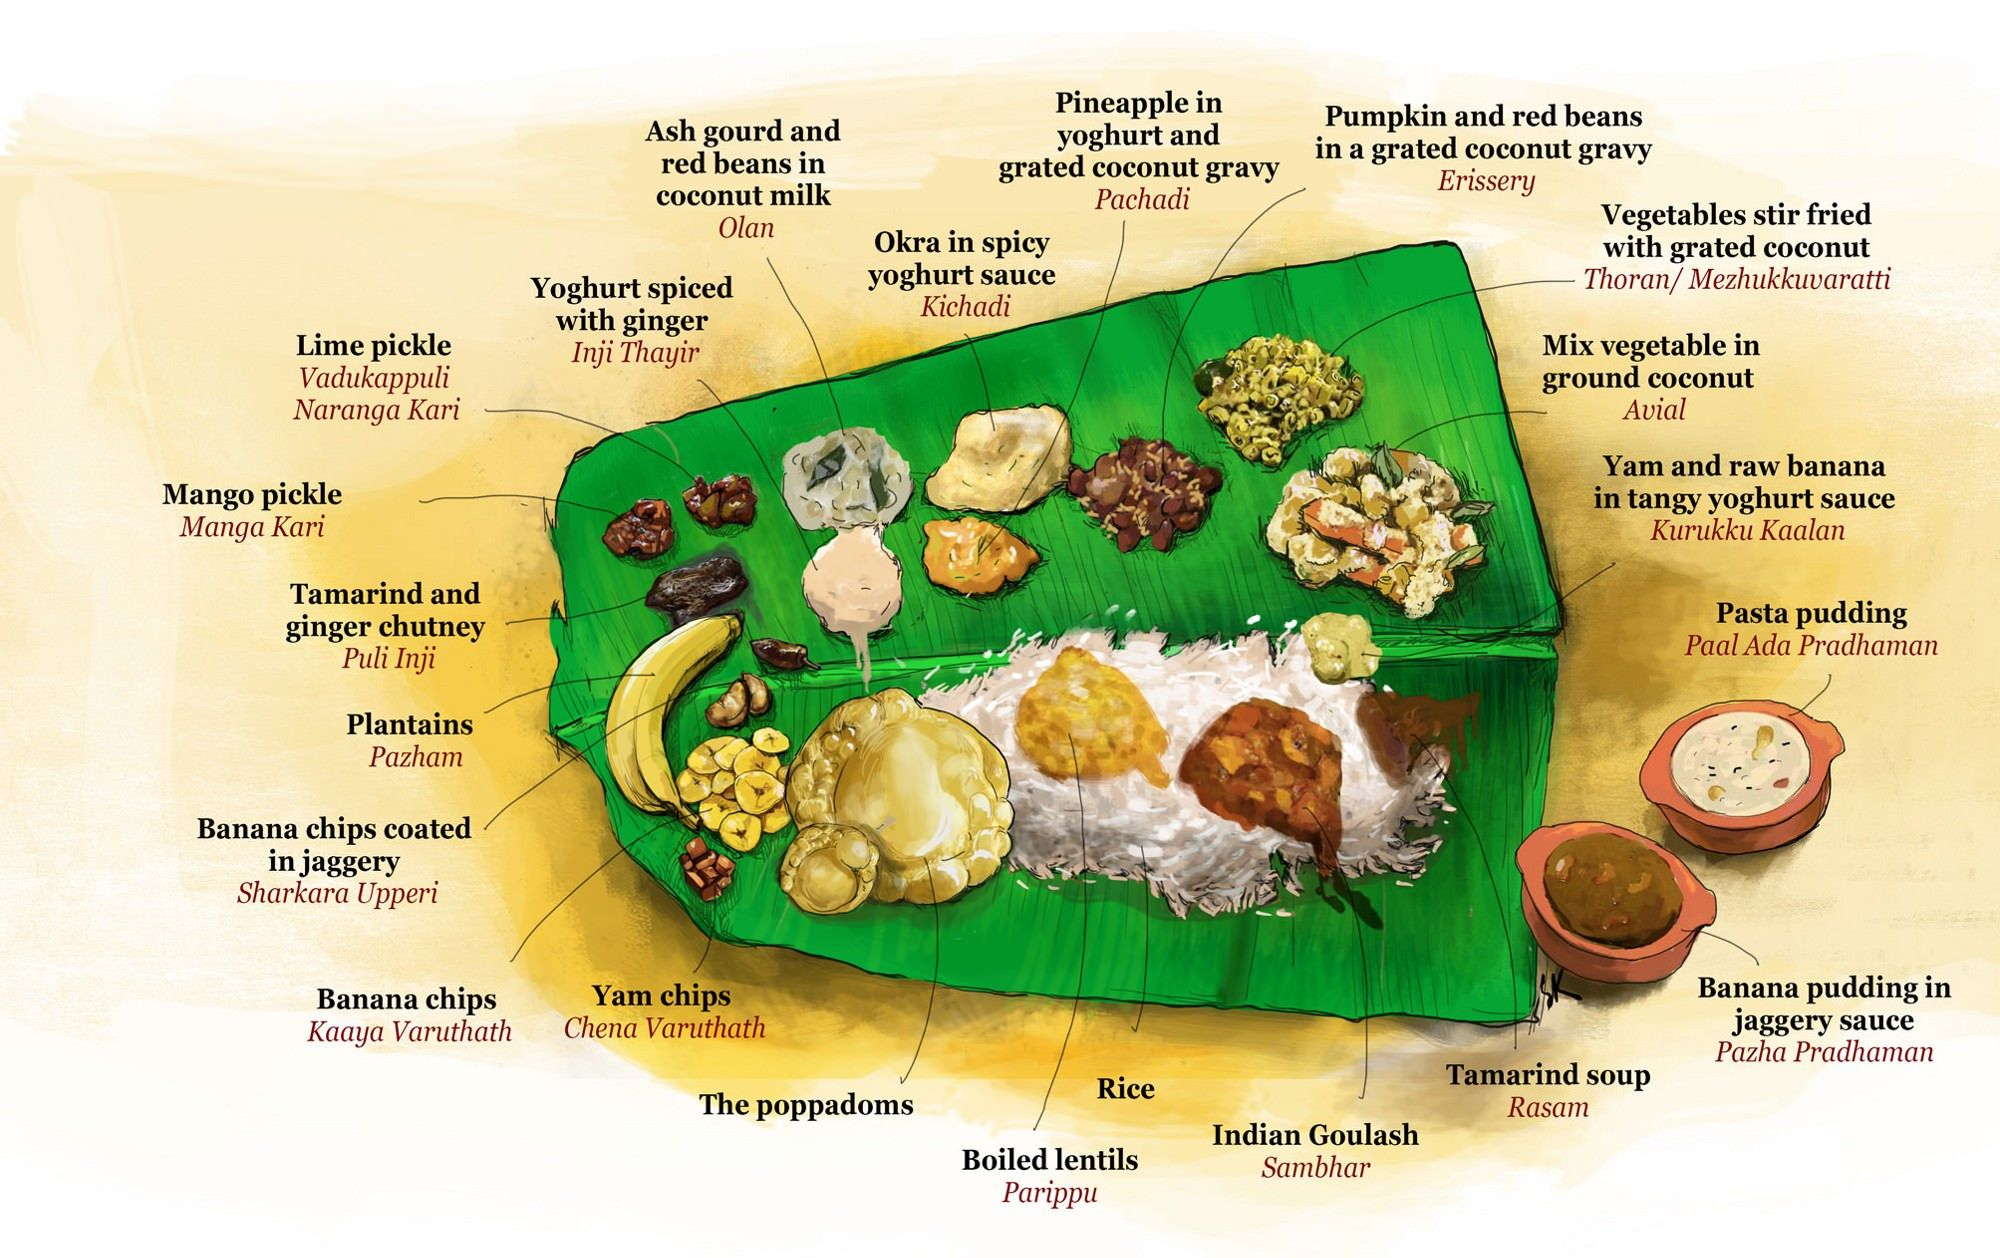 an overview of the onam festival of kerala It's back to kerala for our latest curry leg onam, situated at the southern most tip of the curry corridor of tooting high st, conveniently located around the corner.